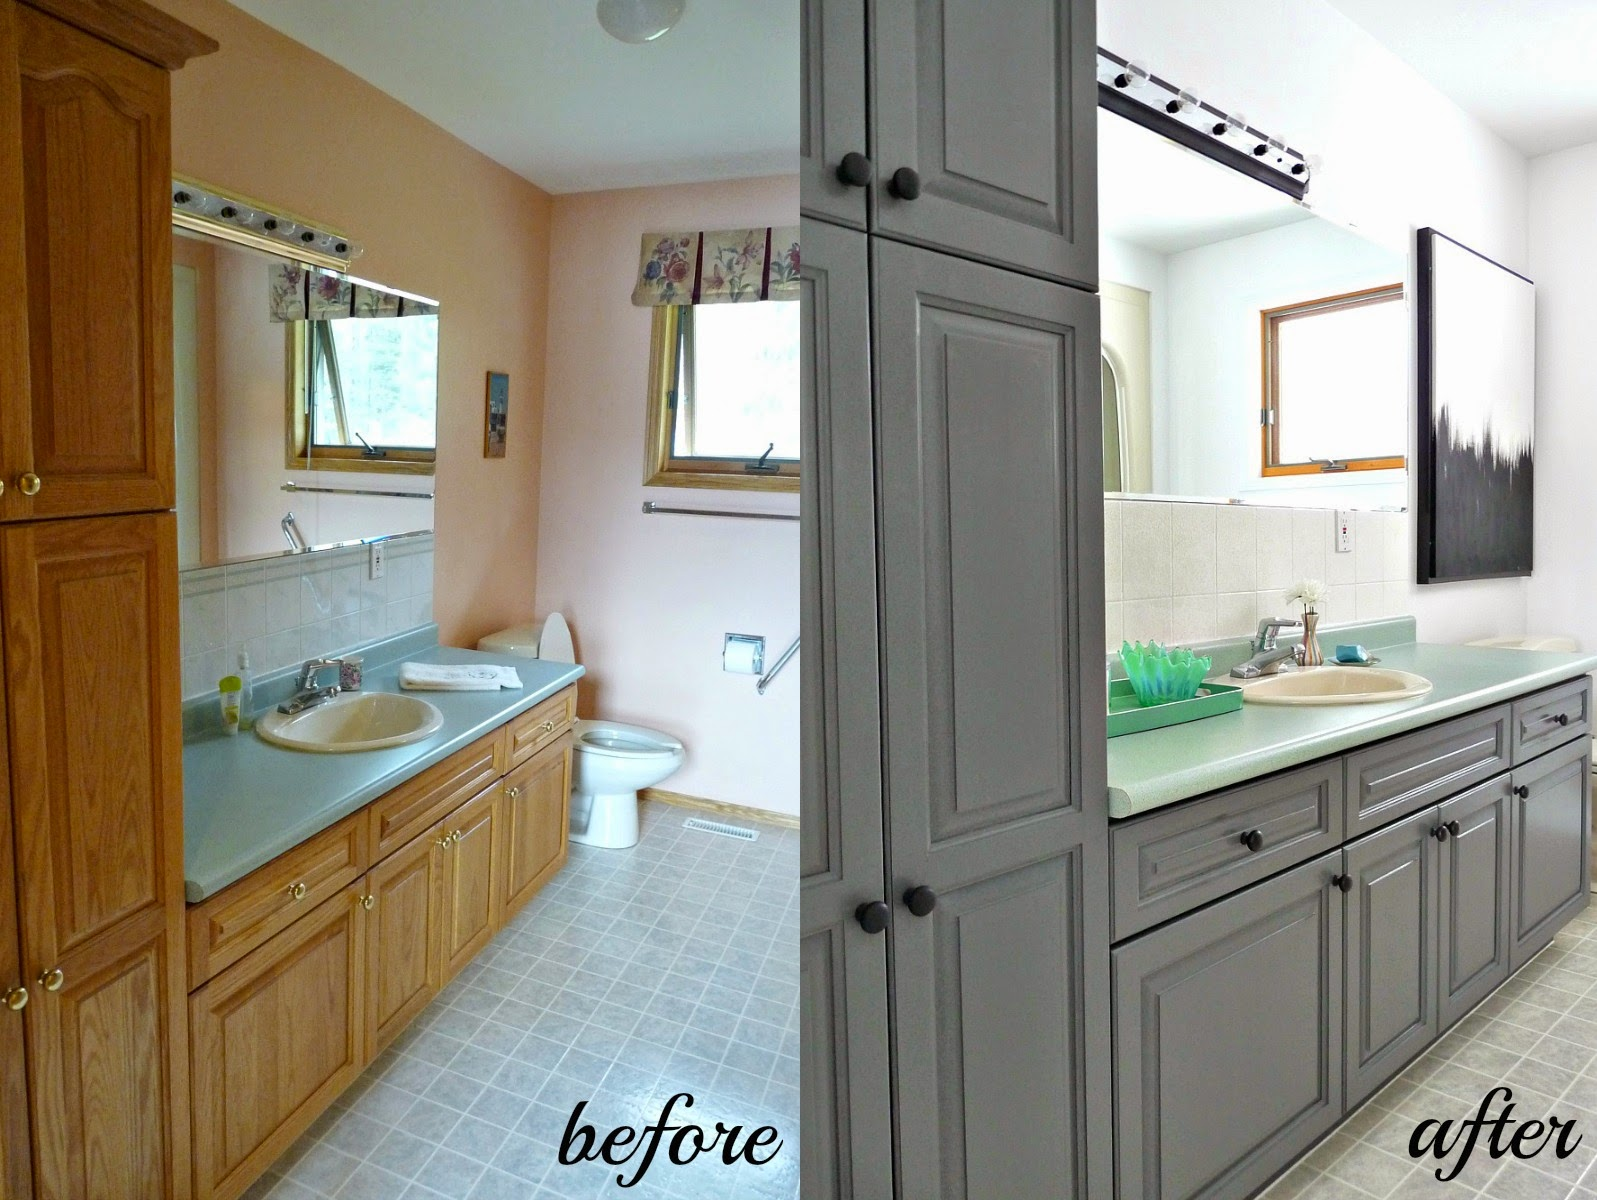 cabinet refinishing paint vs stain vs spray painting kitchen cabinets Review of Rustoleum Cabinet Transformations System